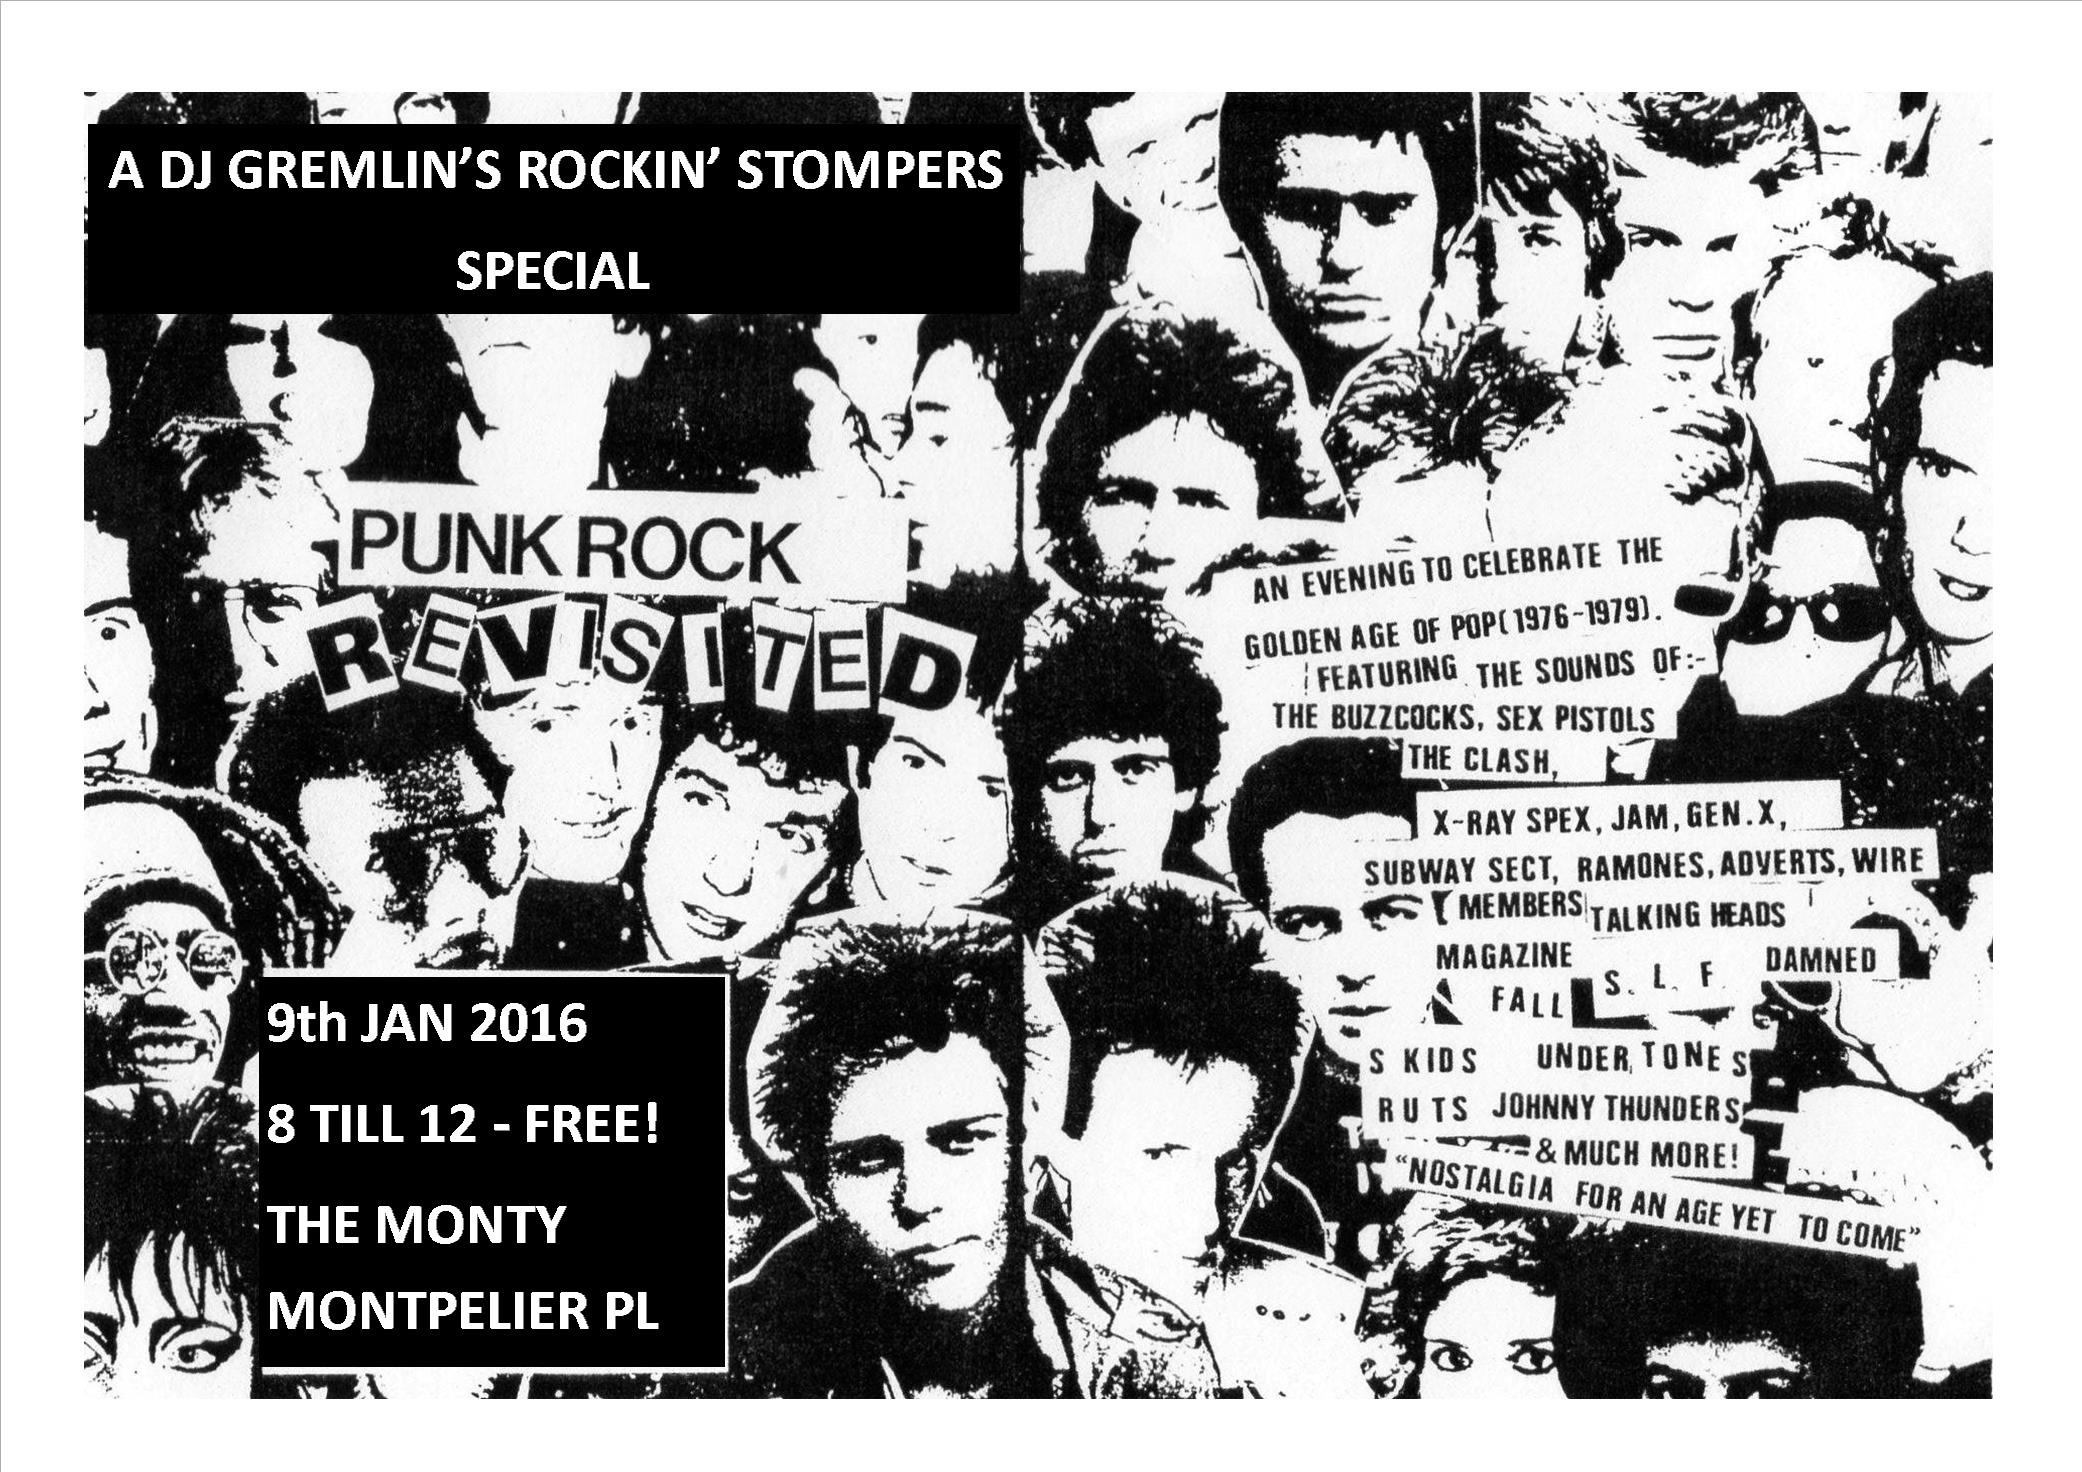 Punk Rock Revisited at The Monty